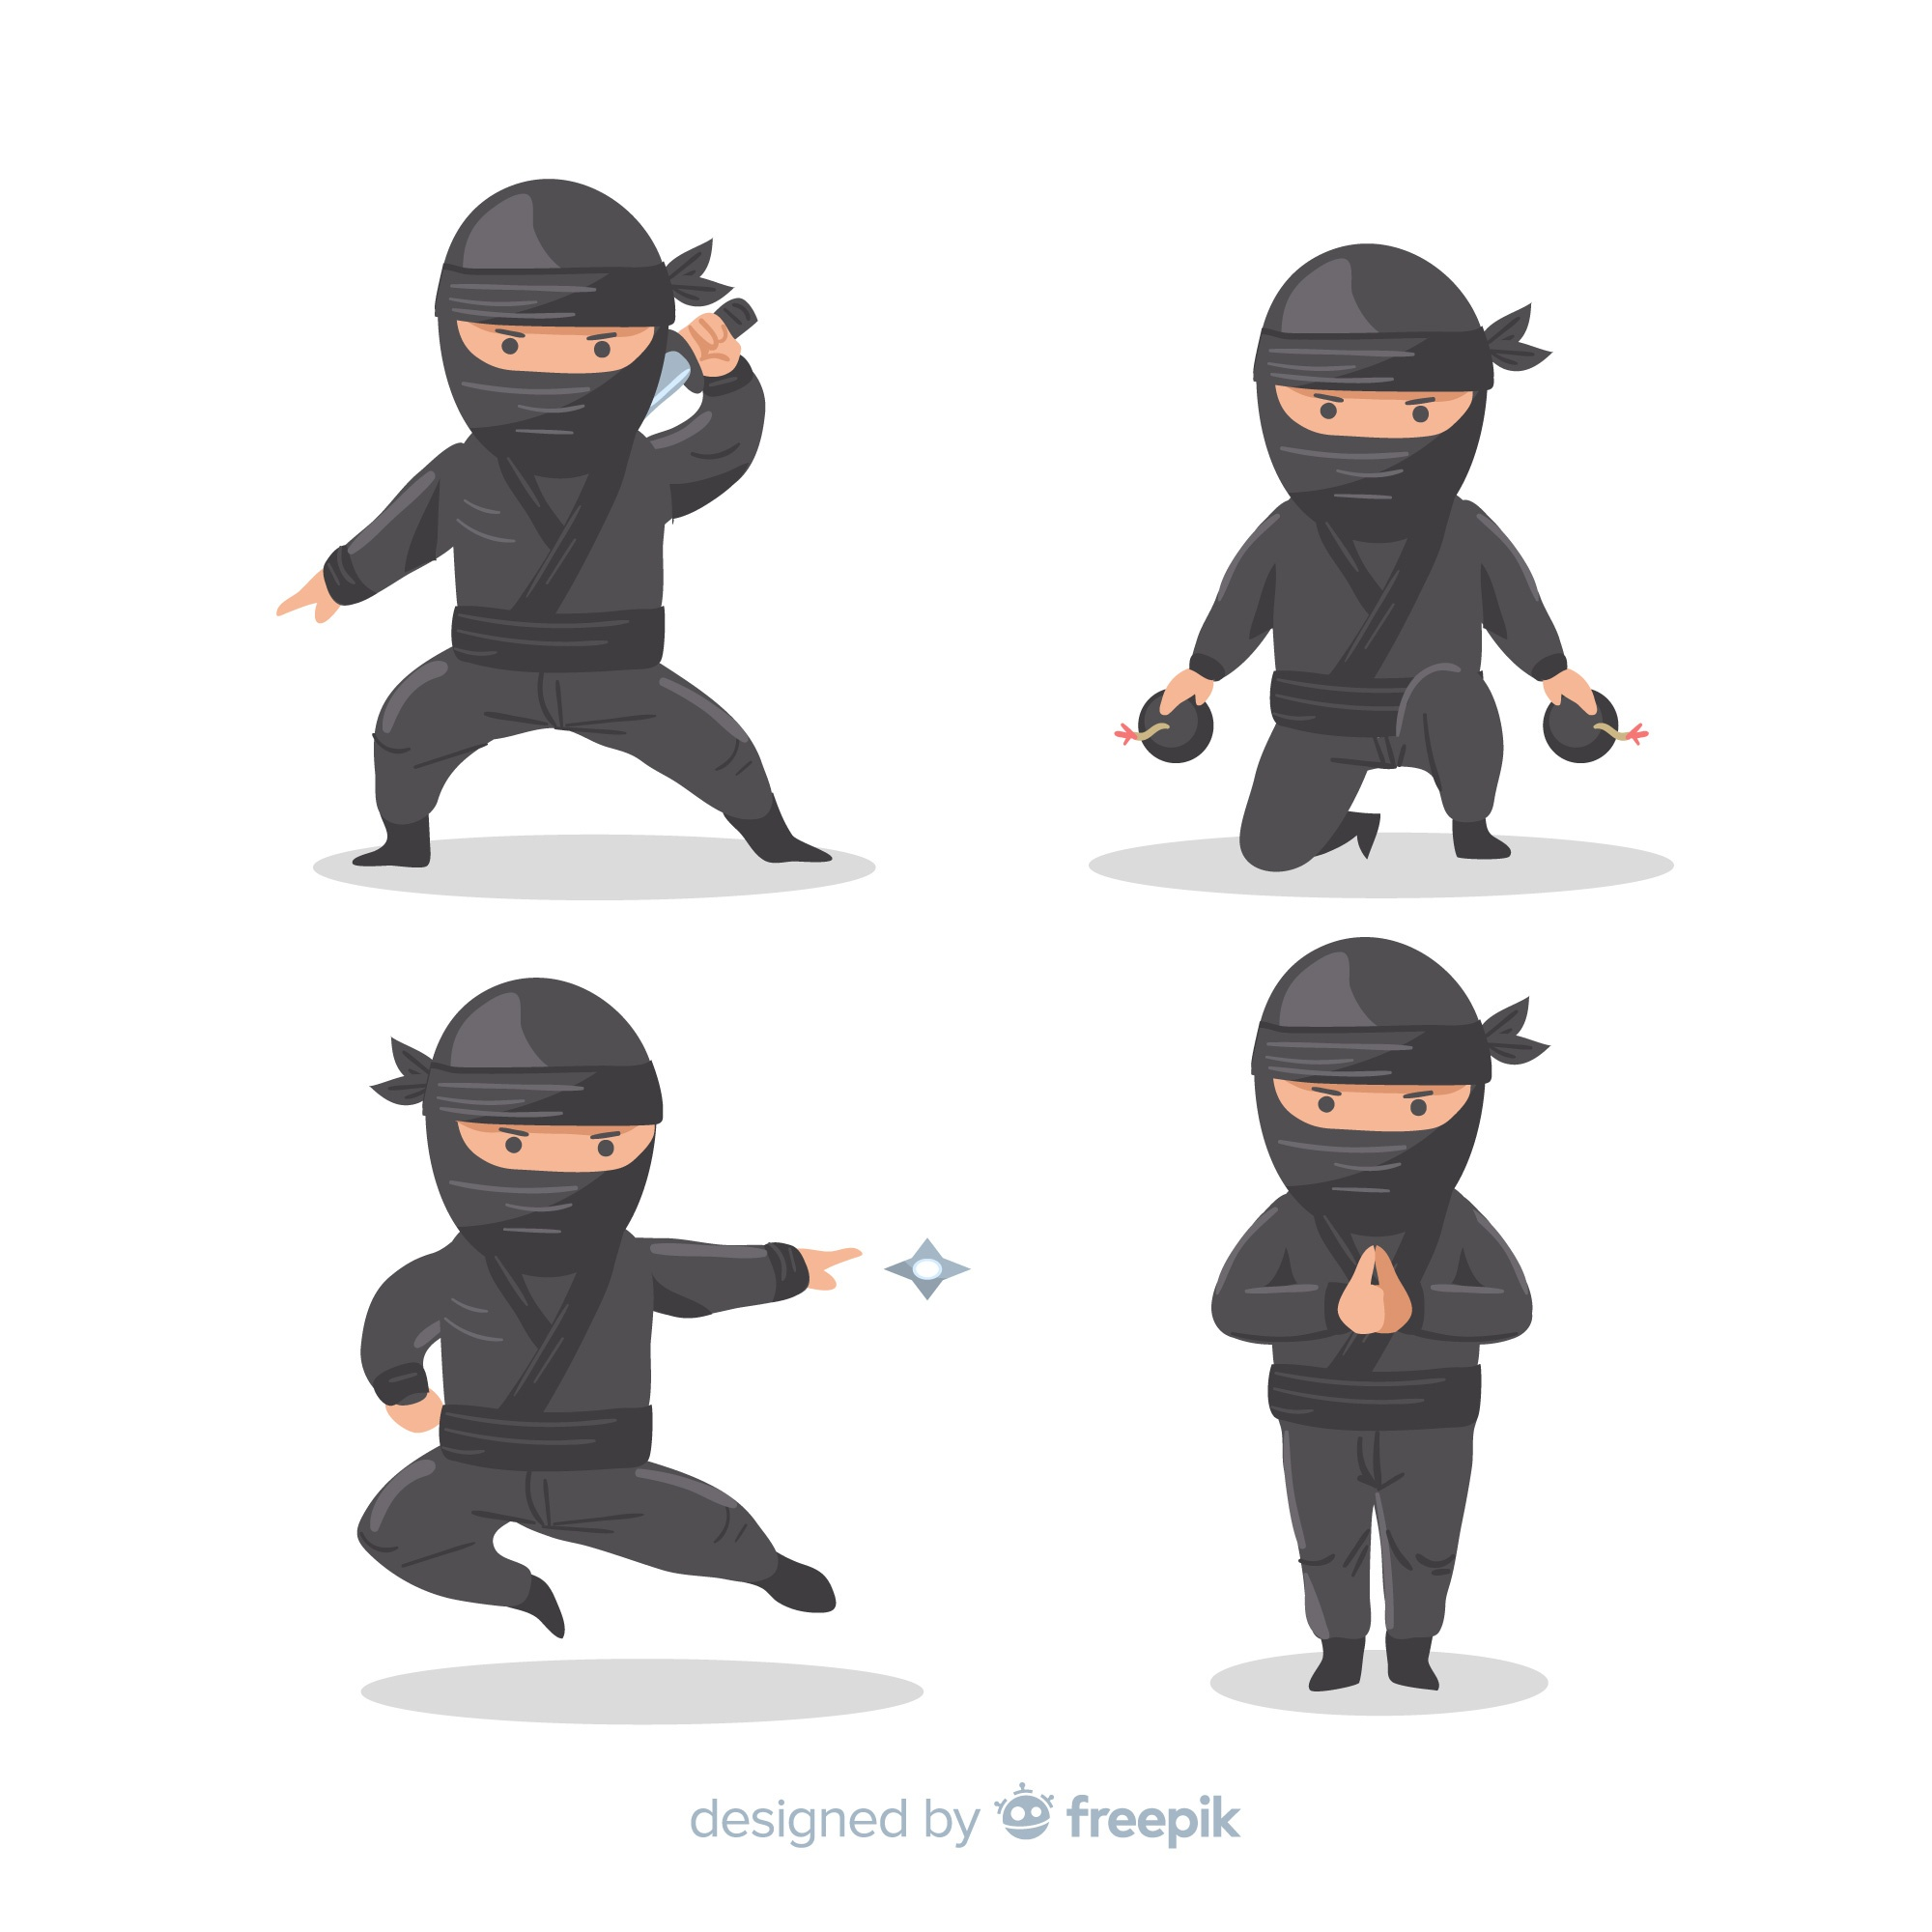 Classic ninja composition with flat design